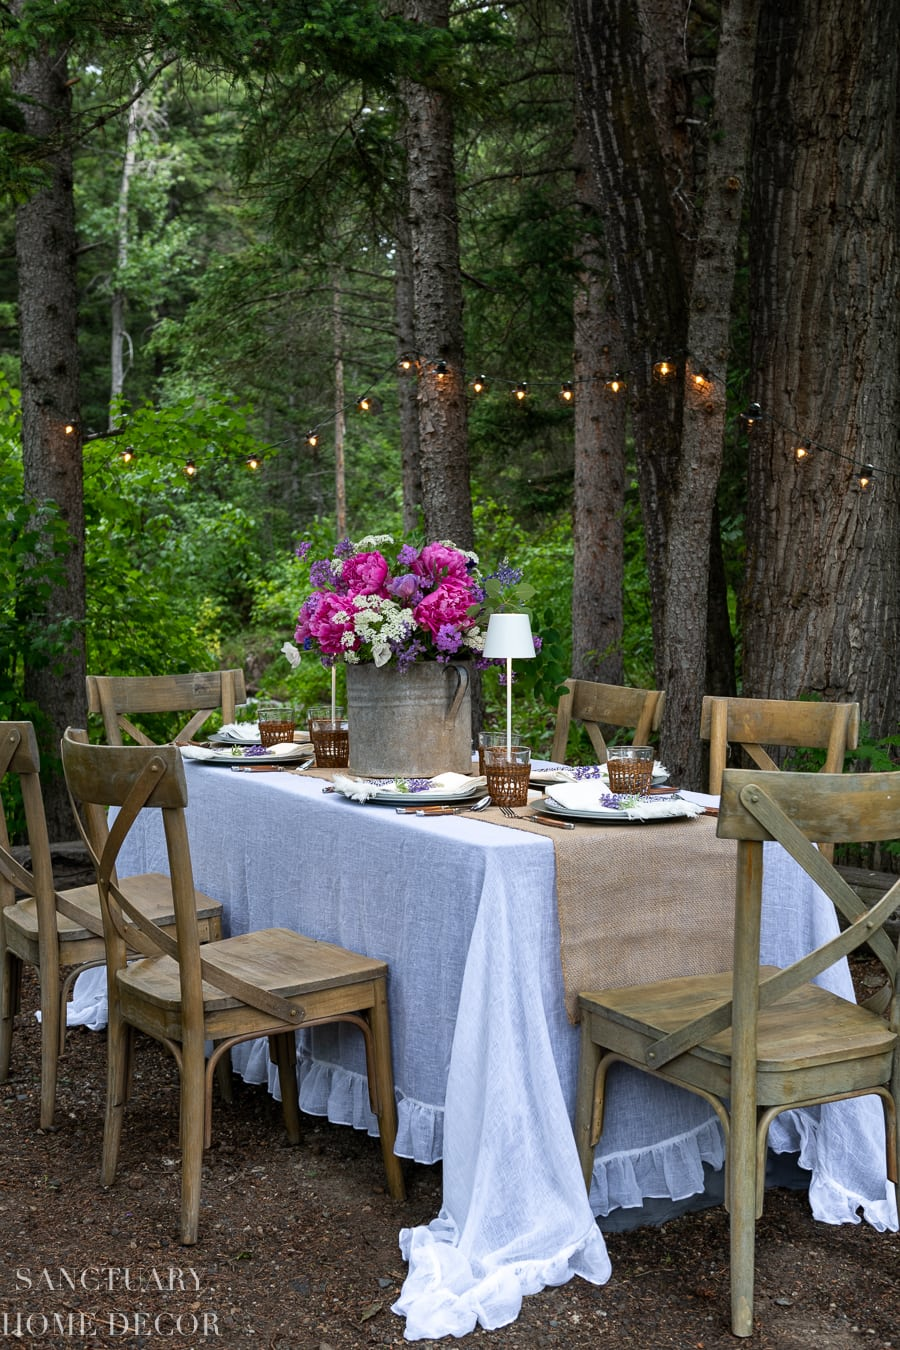 Easy-Ideas-for-Summer-Dining-Sanctuary-Home-Decor